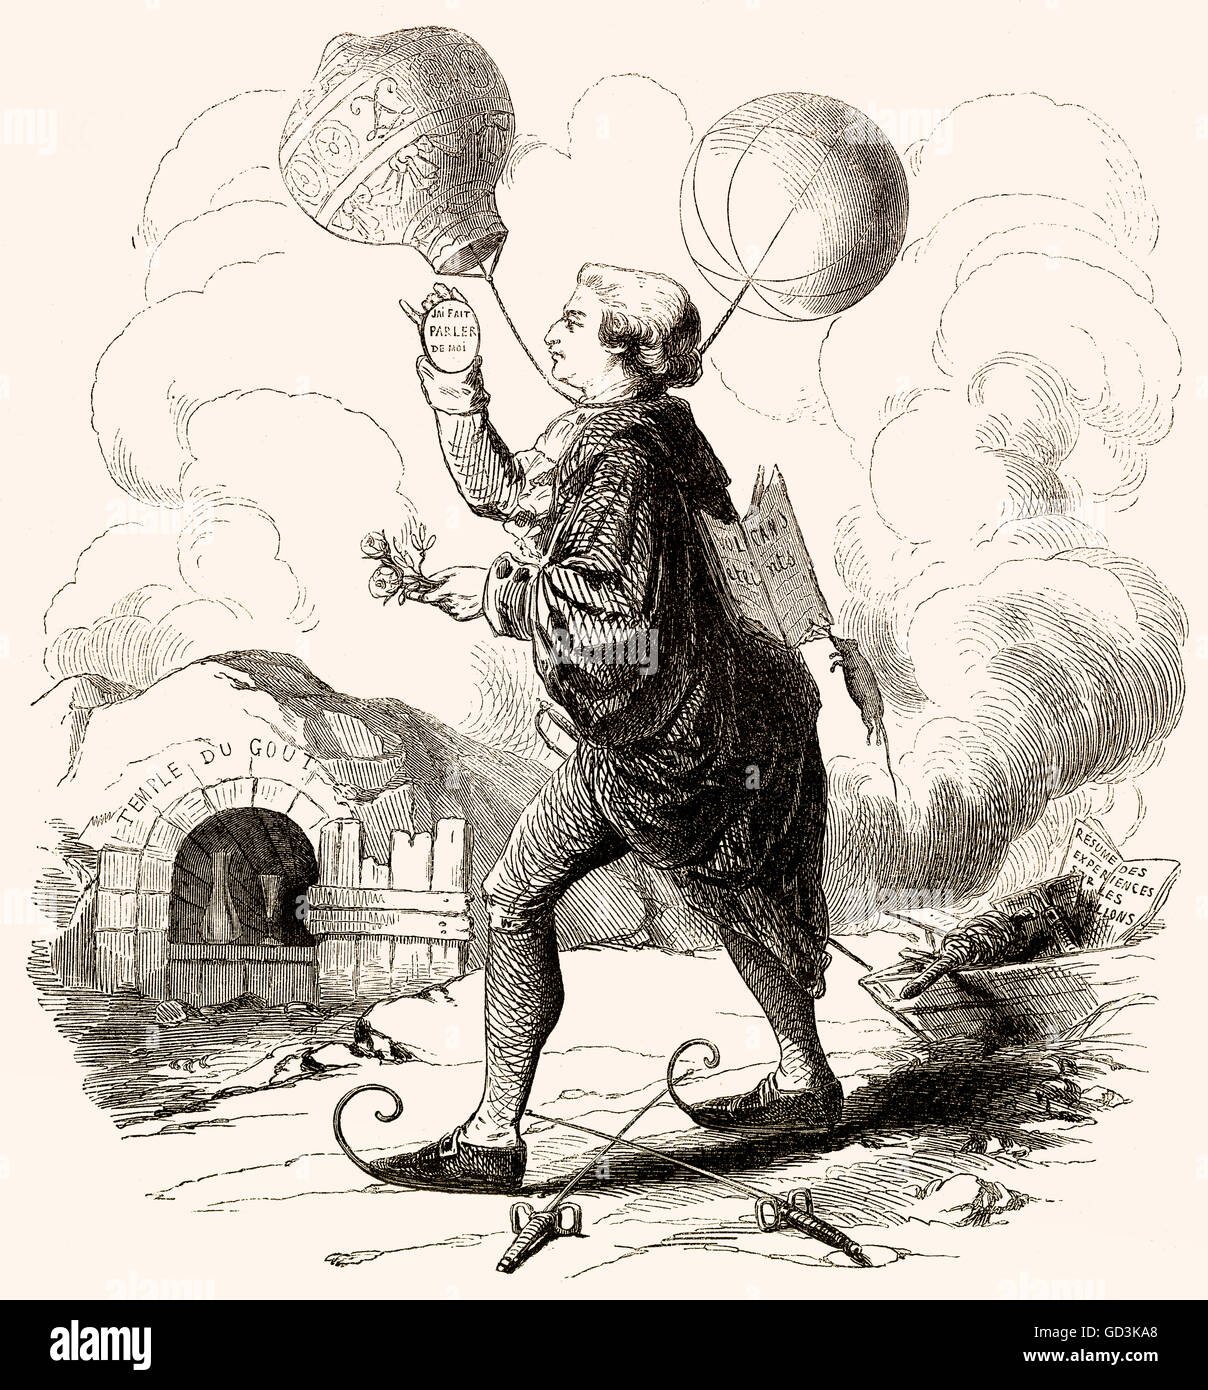 Balloonomania, cartoon in France in the late 18th century - Stock Image